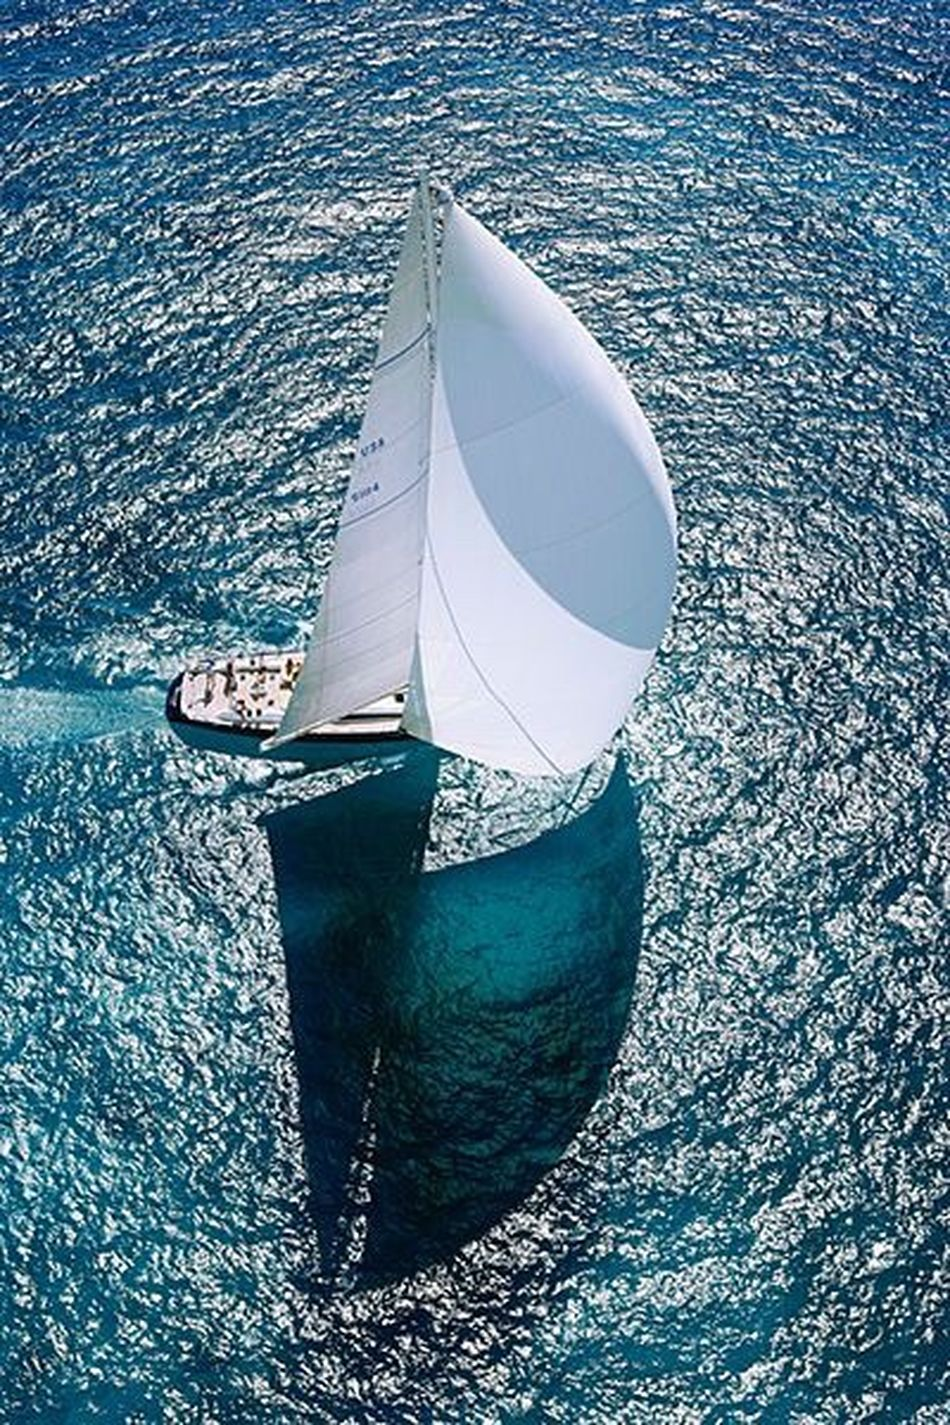 Sea Nautical Vessel High Angle View Day Aerial View Outdoors People UnderSea Yachting